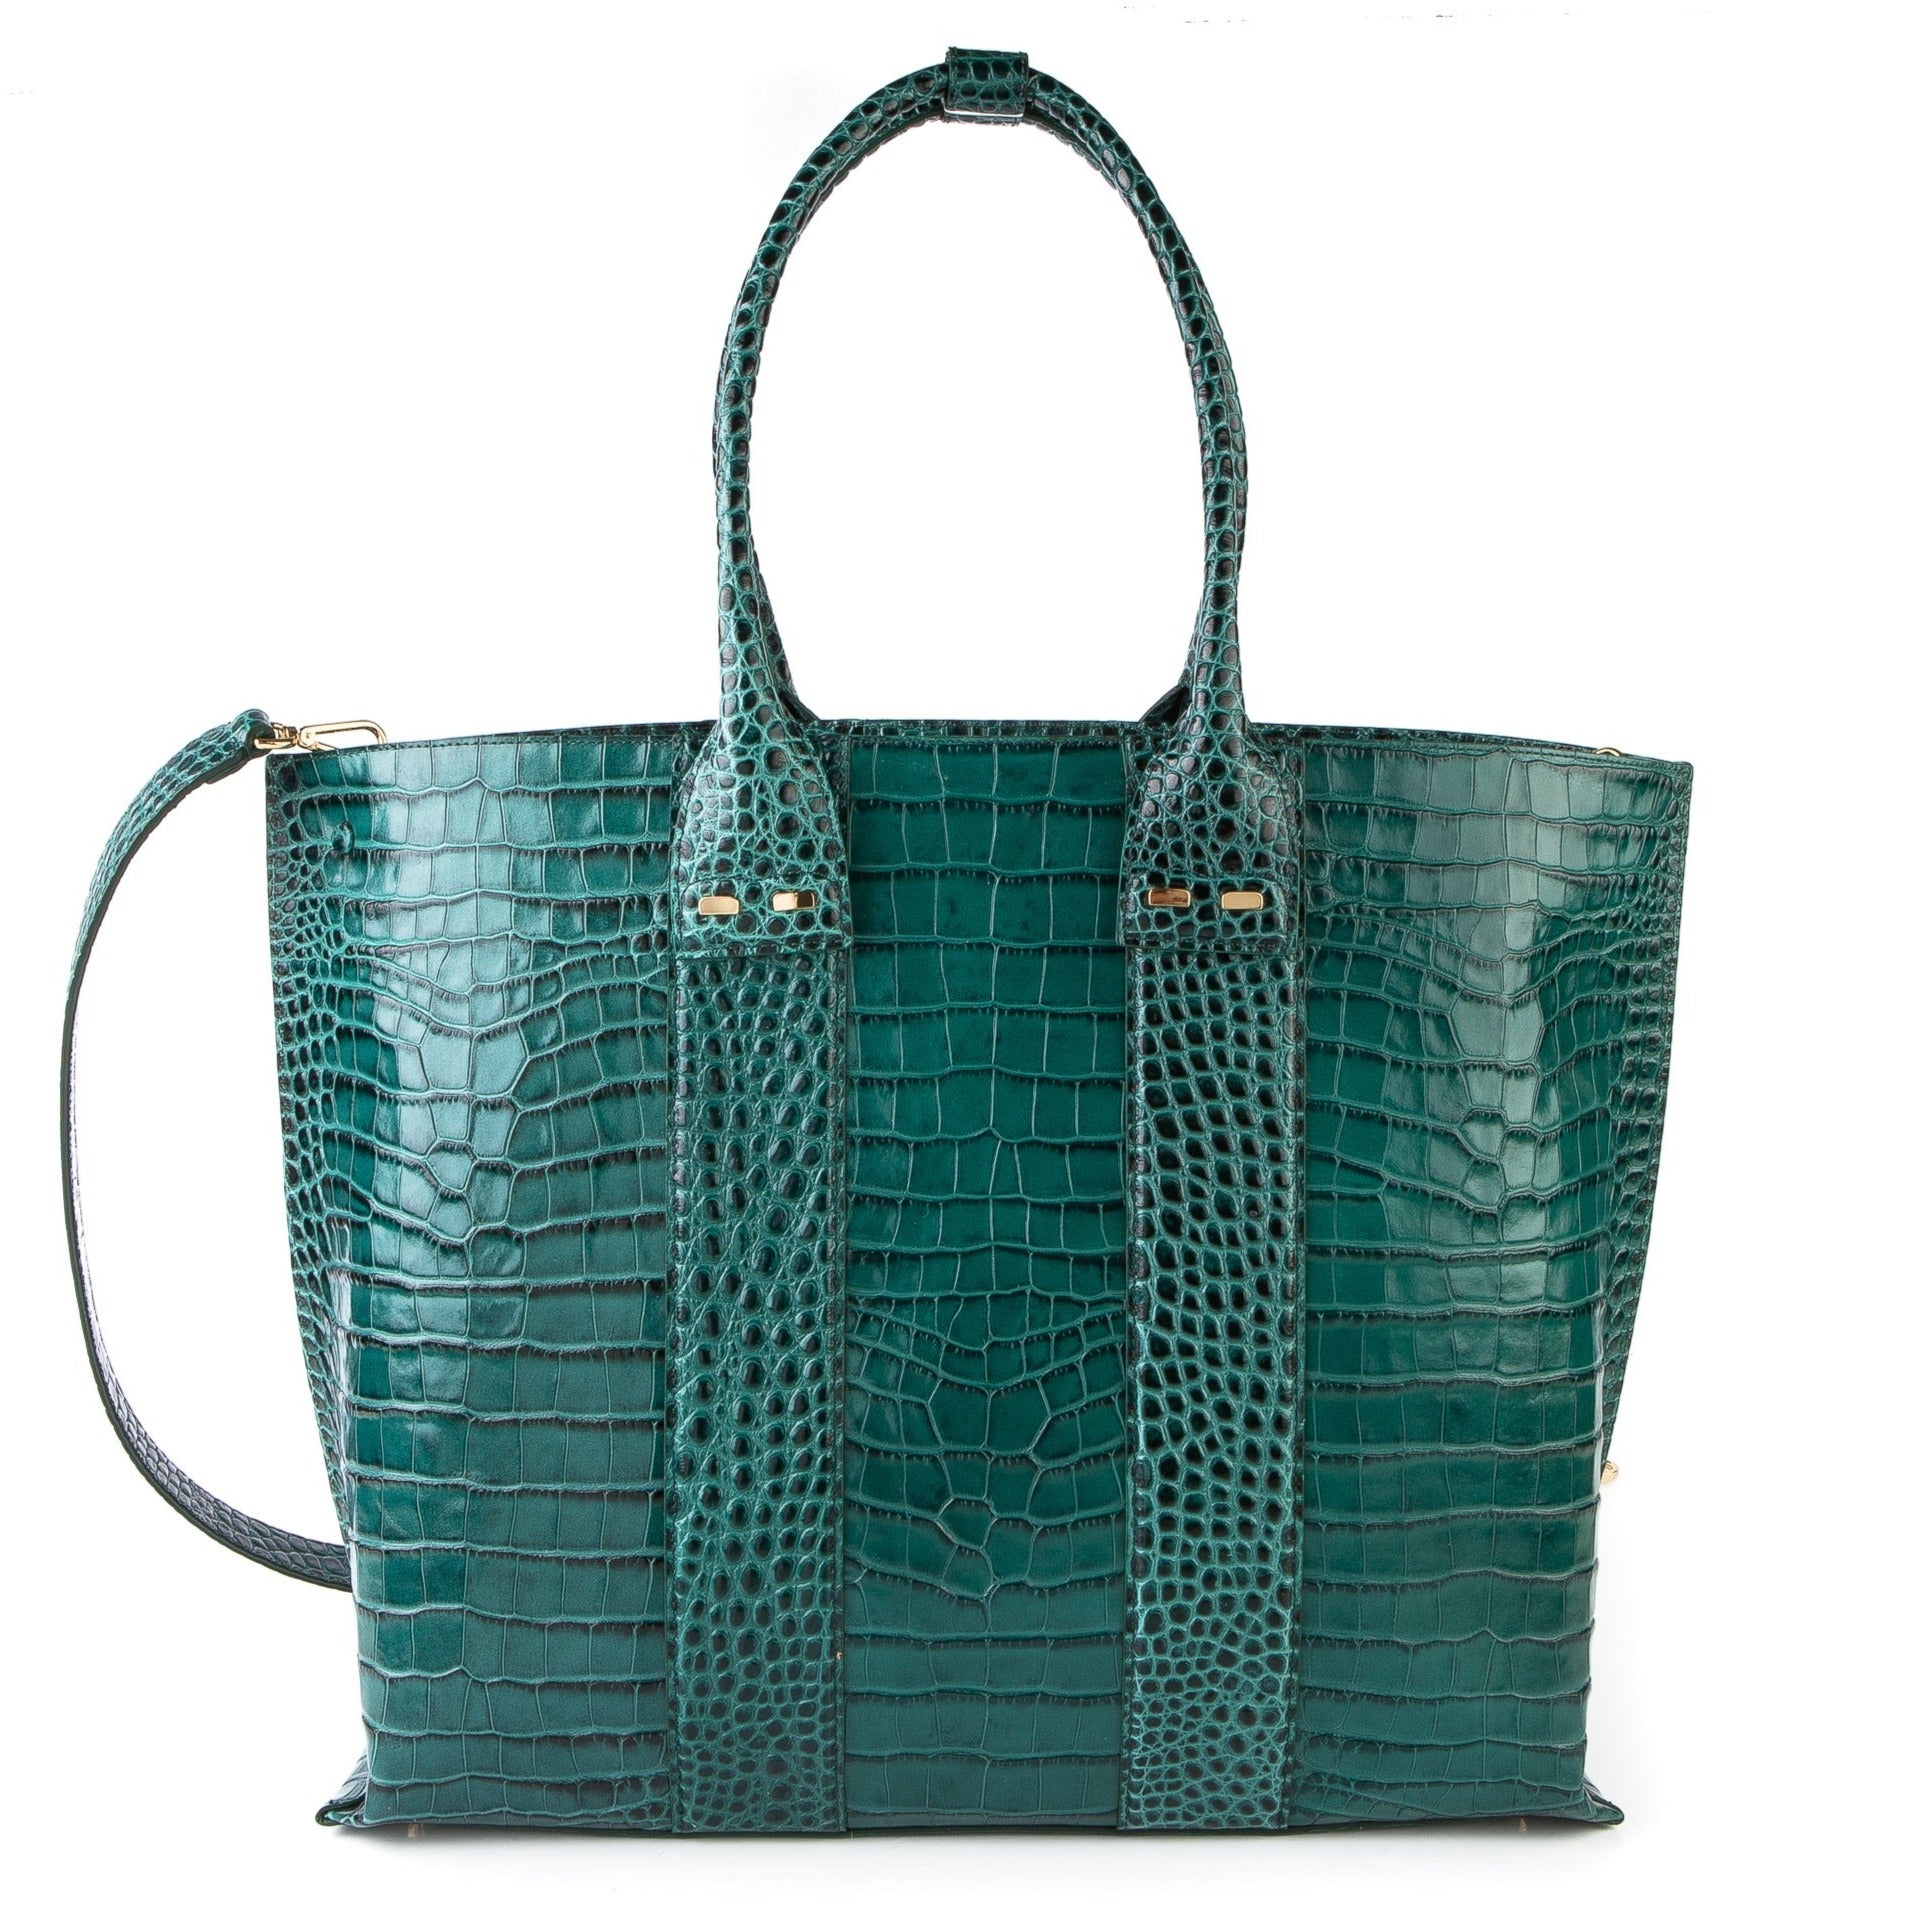 Stafford in Emerald in Alligator Stamp